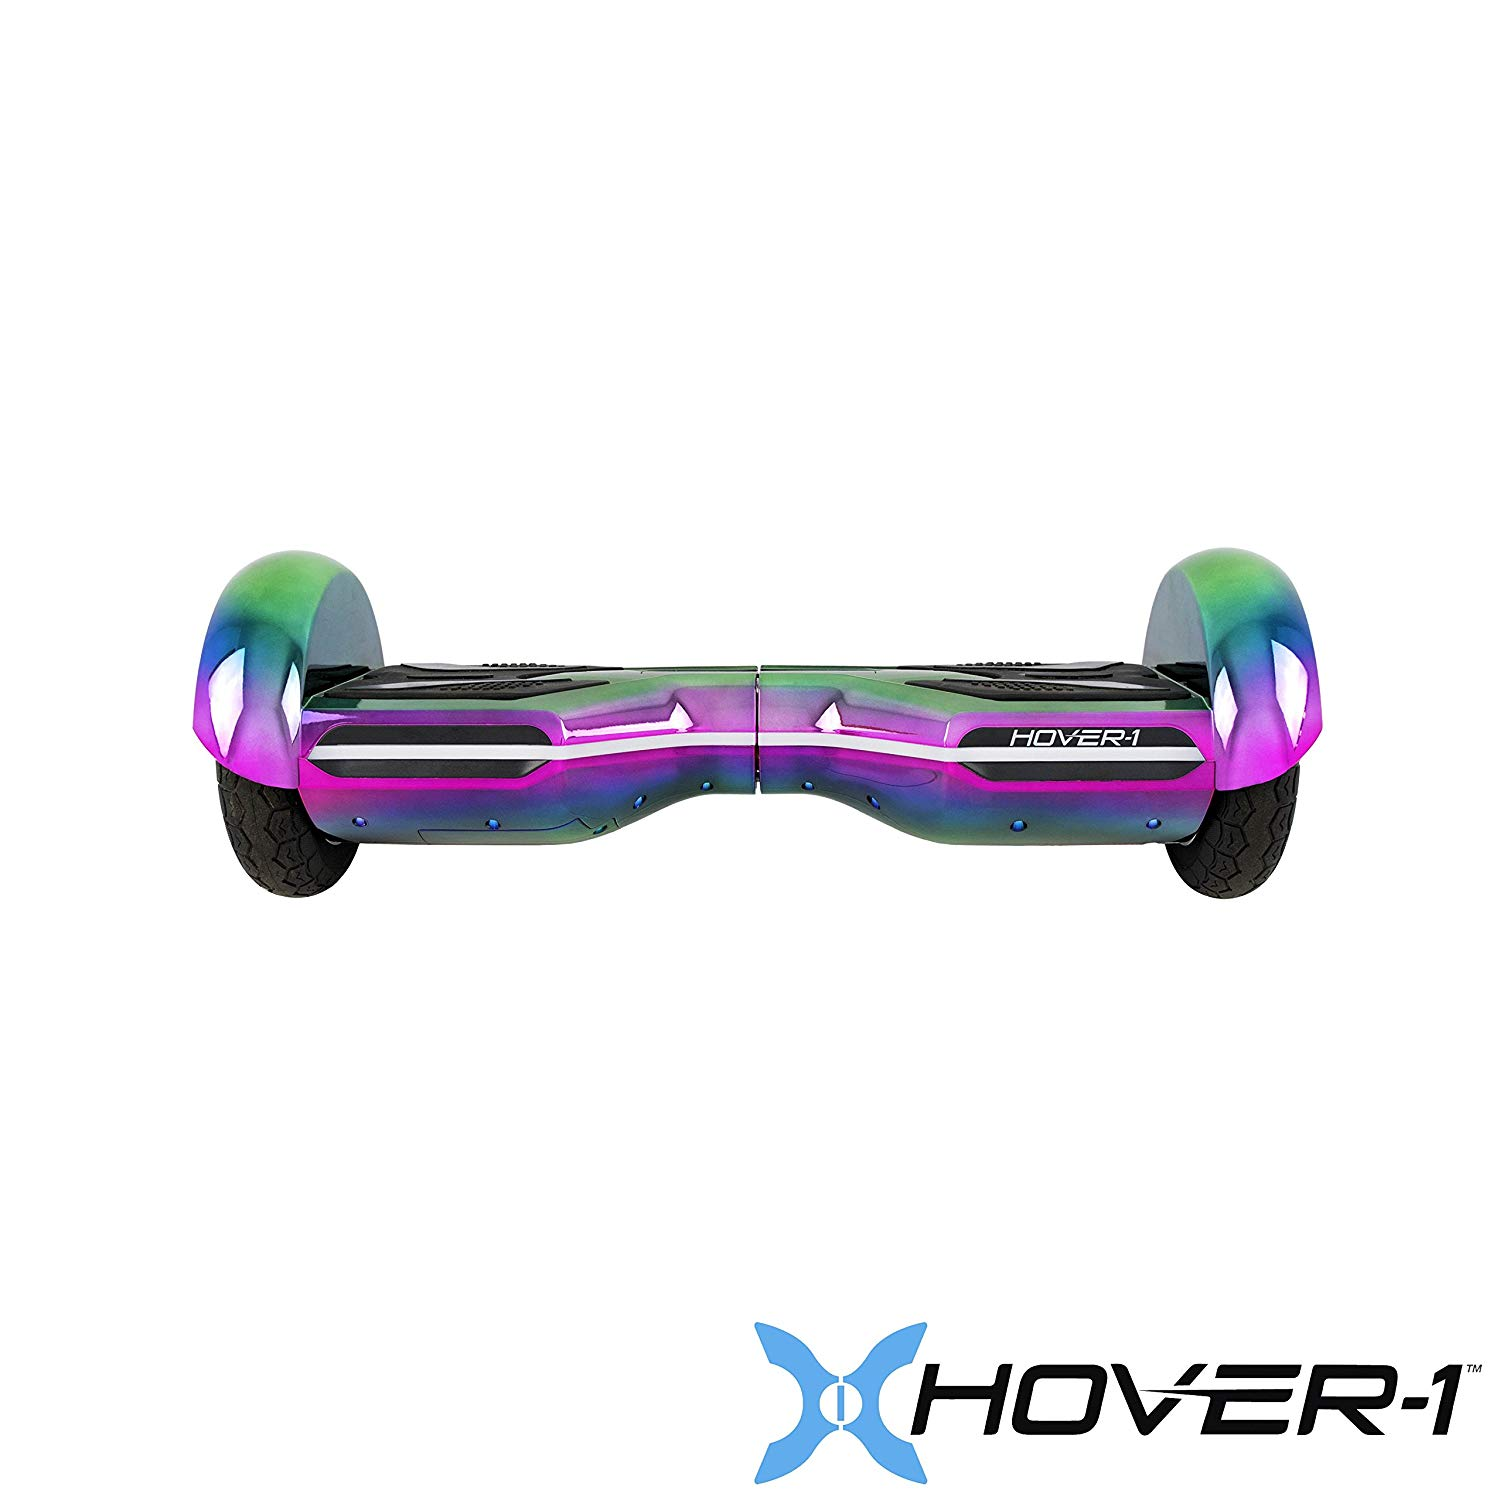 Hover-1 Horizon- UL 2272 Certified- Electric Self Balancing Hoverboard with Bluetooth, LED Lights and App connectivity, Iridescent